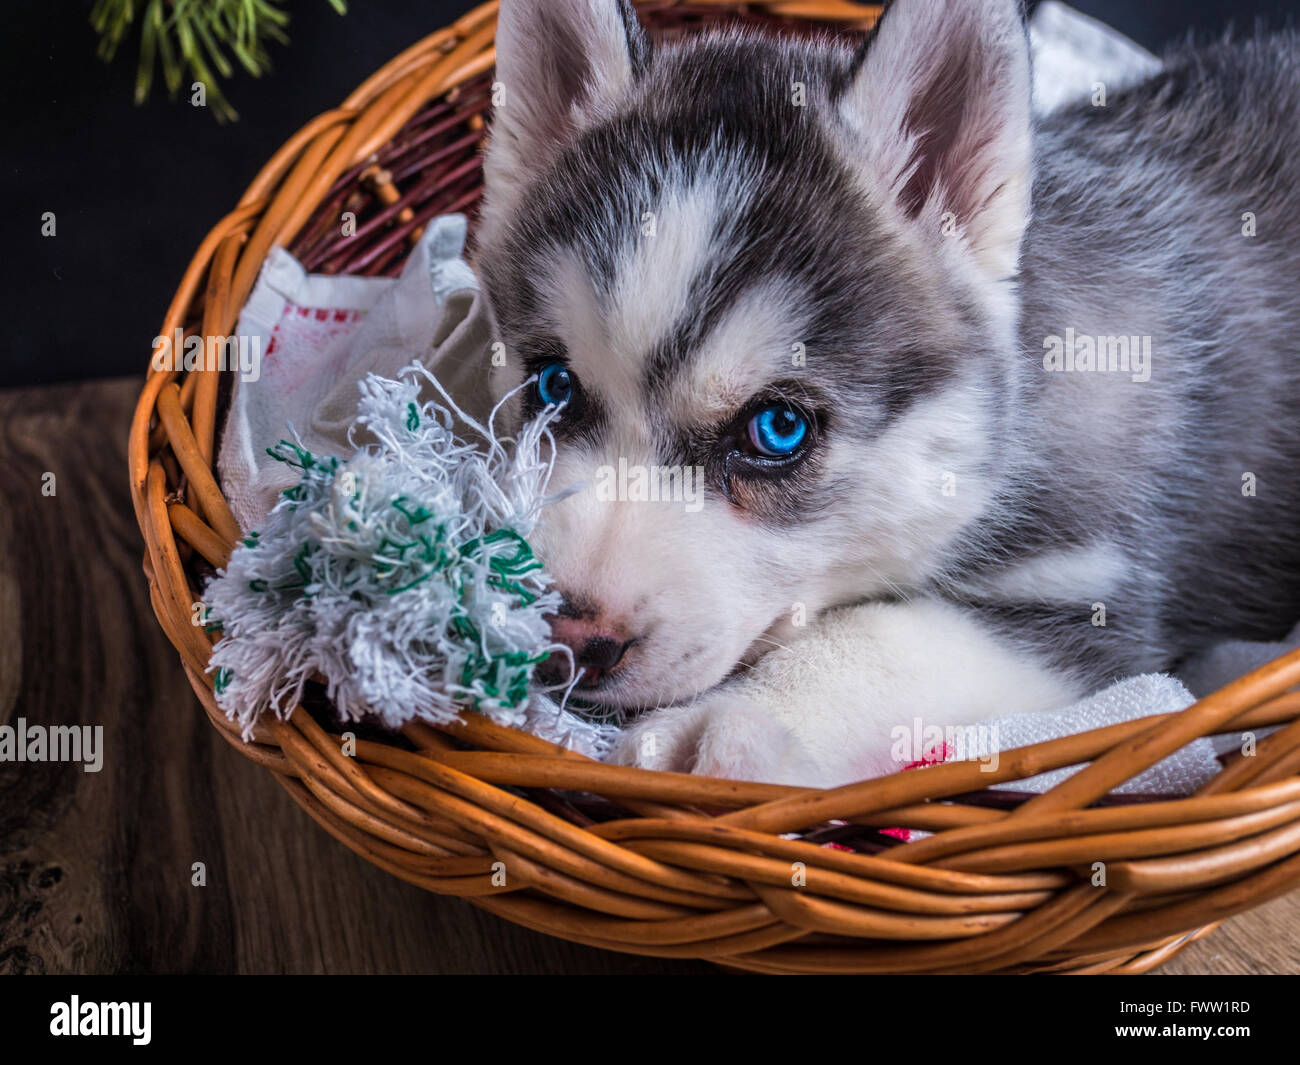 Cute Siberian Husky Puppy With Blue Eyes In The Basket Stock Photo Alamy